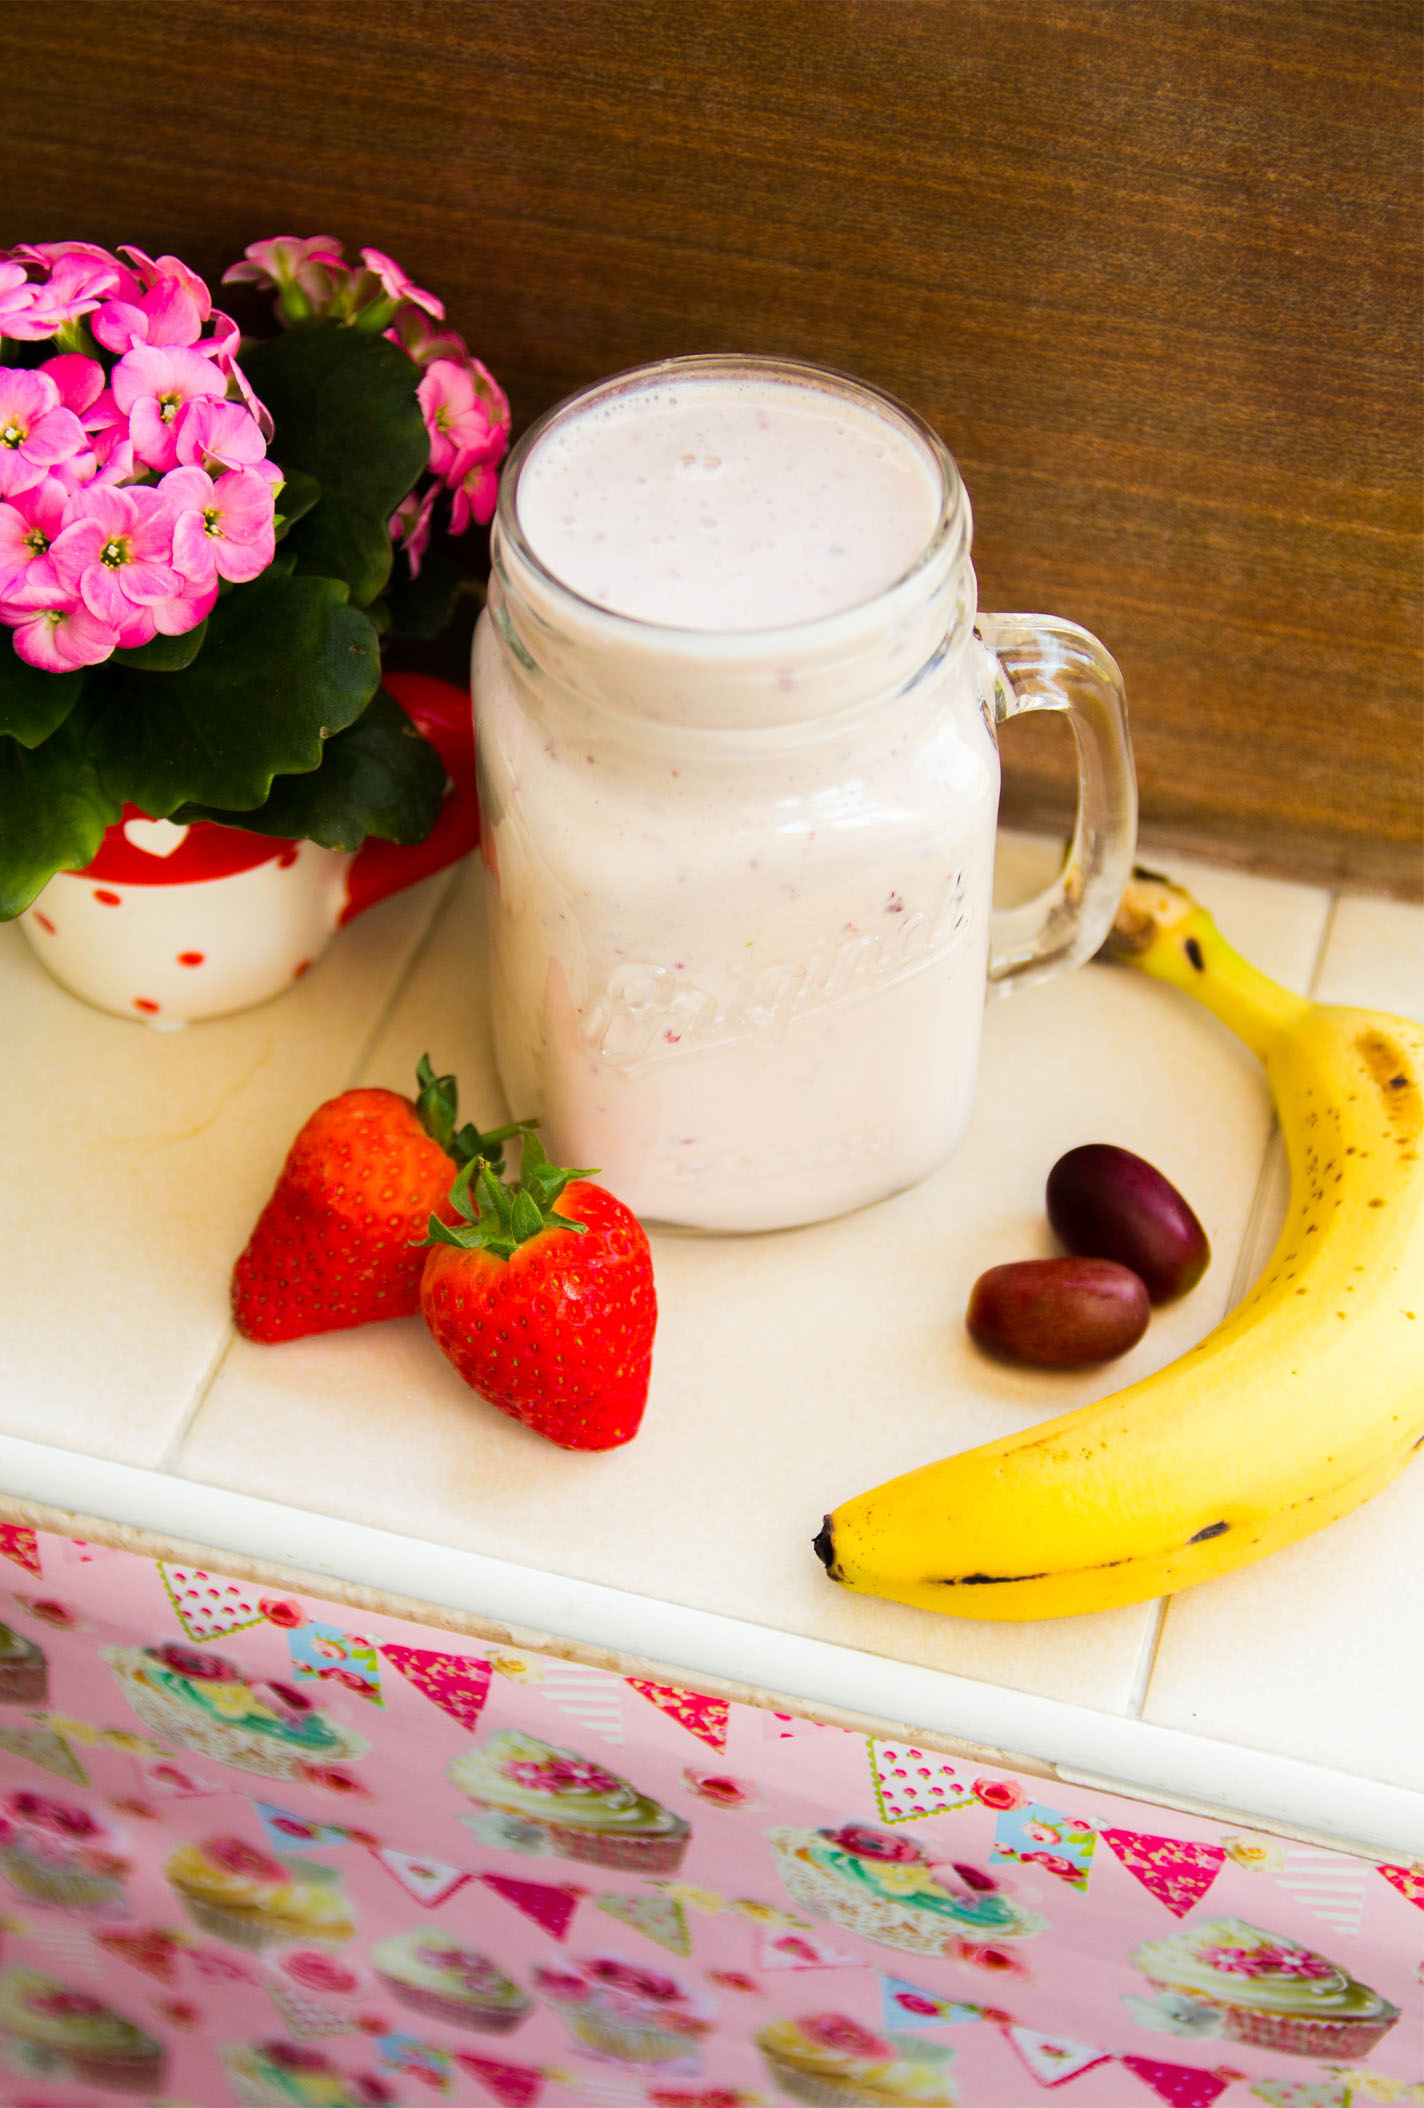 Strawberry Banana Smoothie #healthy #smoothie #summer #dairyfree #sugarfree #lowsugar #protein #breakfast